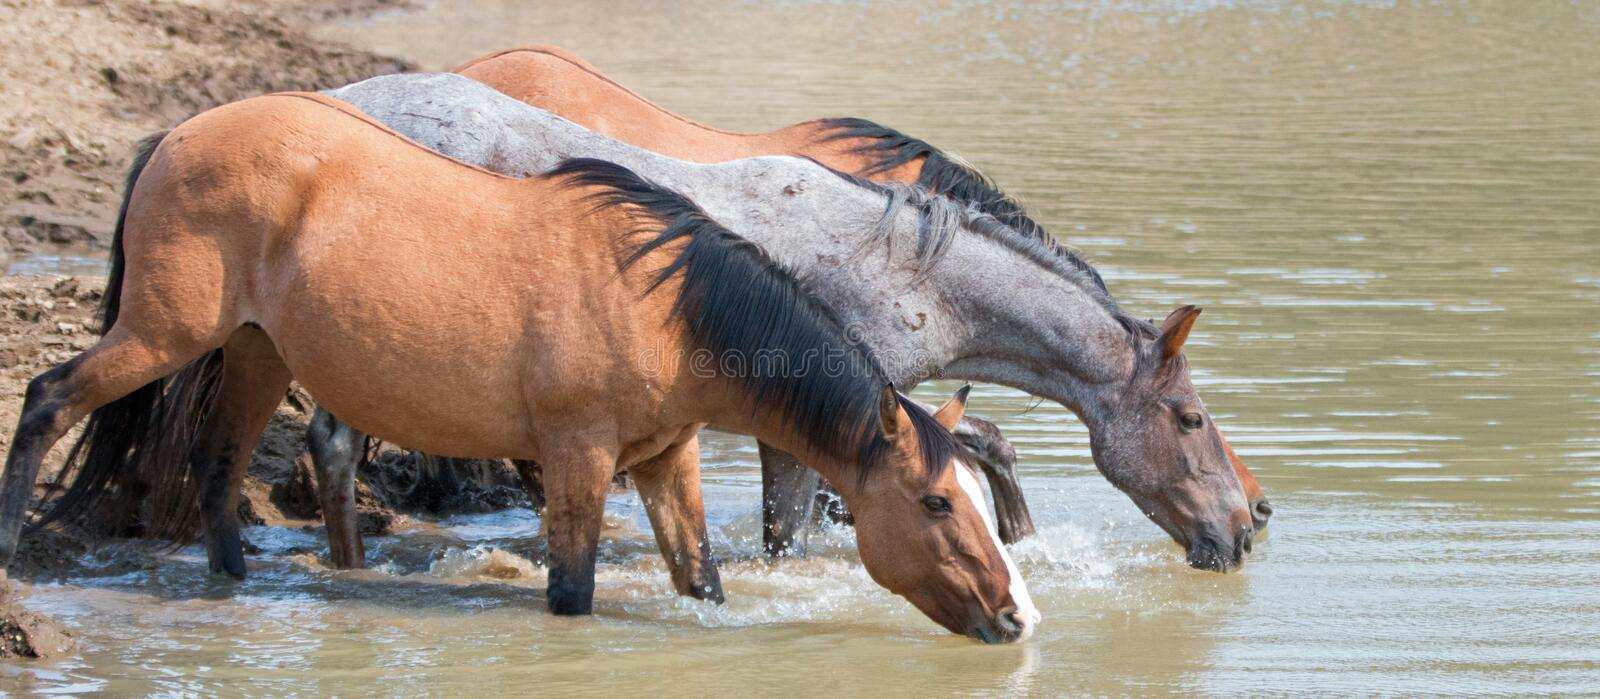 Dun Bucksin mare drinking water with herd small band of wild horses at the waterhole in the Pryor Mountains Wild Horse Range in. Montana United States stock photo